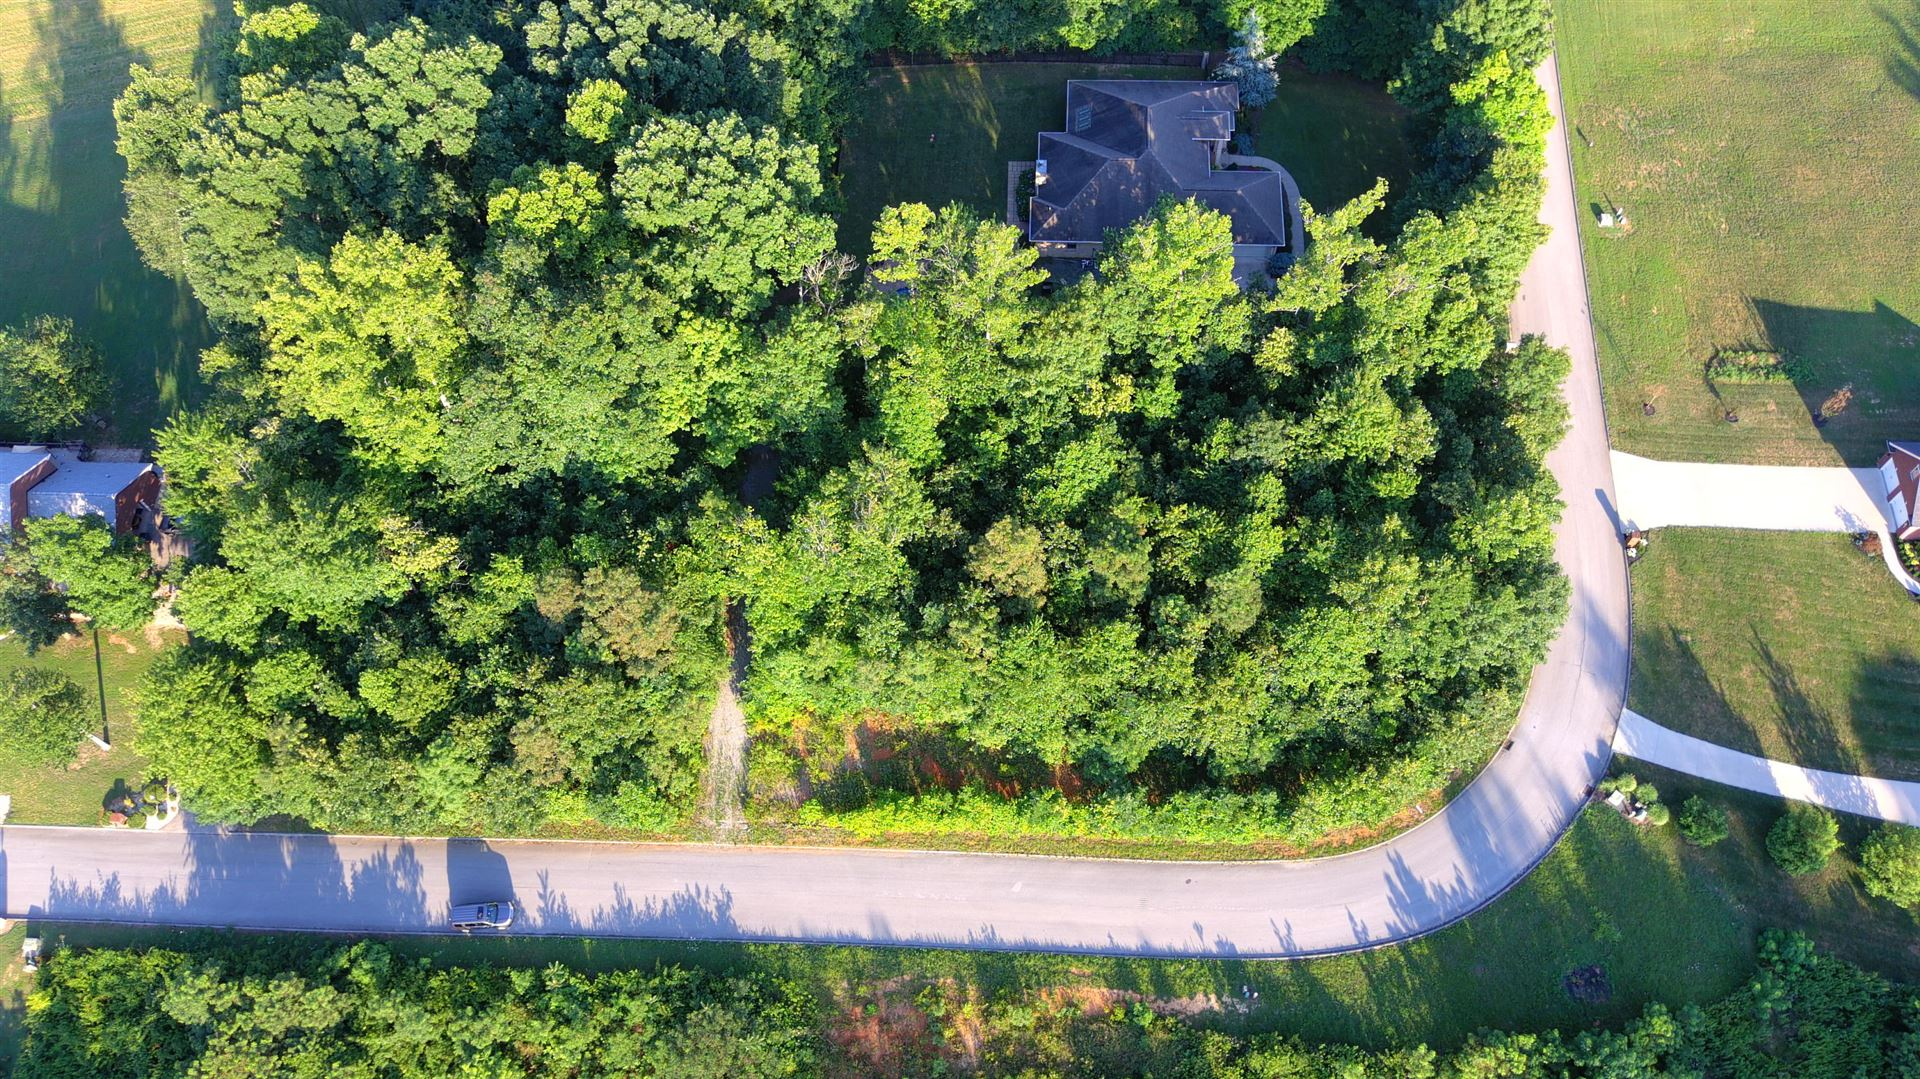 Photo of 121 Rosecliff Drive, Fall Branch, TN 37656 (MLS # 9911075)